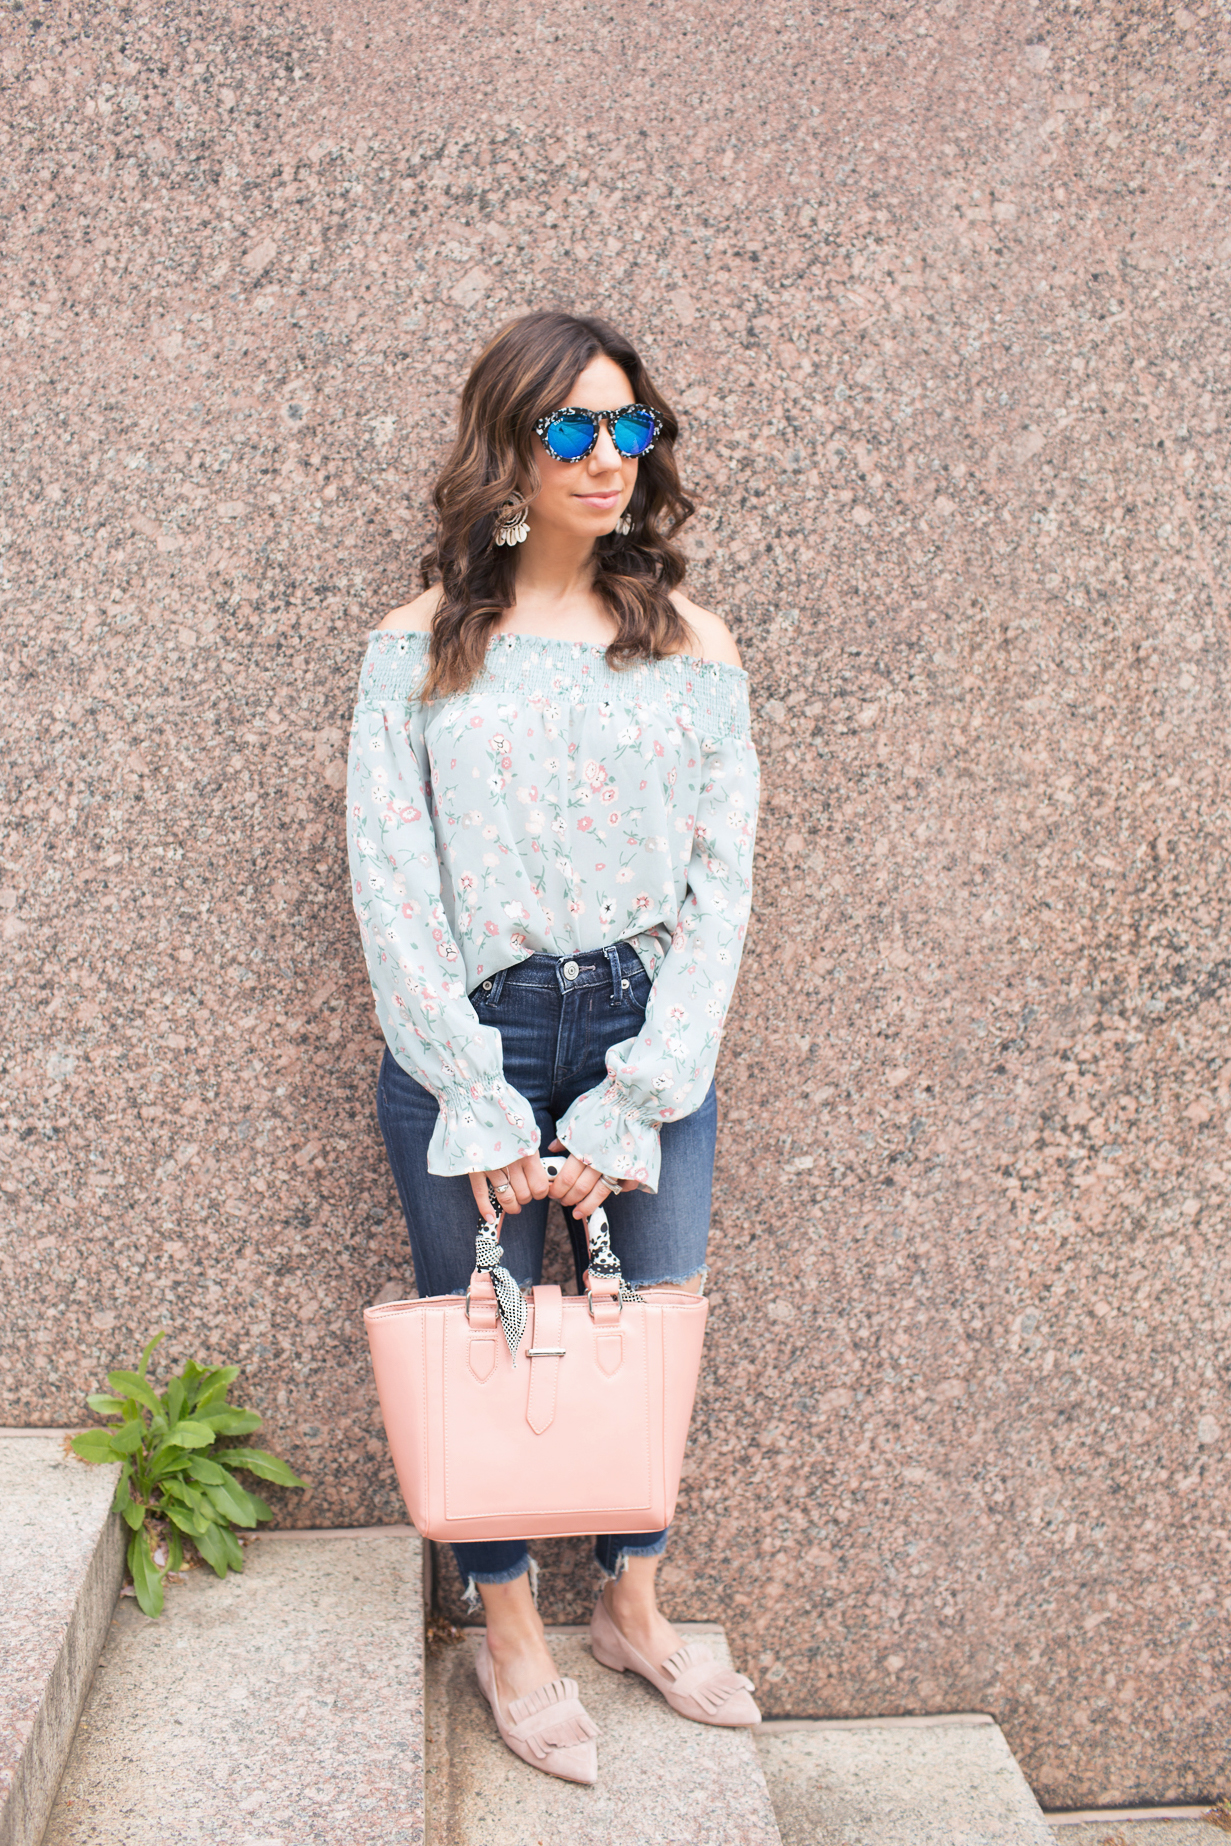 lifestyle blogger Roxanne of Glass of Glam wearing a wild blue denim floral top, express denim, cuore and pelle bag, diff eyewear sunnies, and baublebar earrings